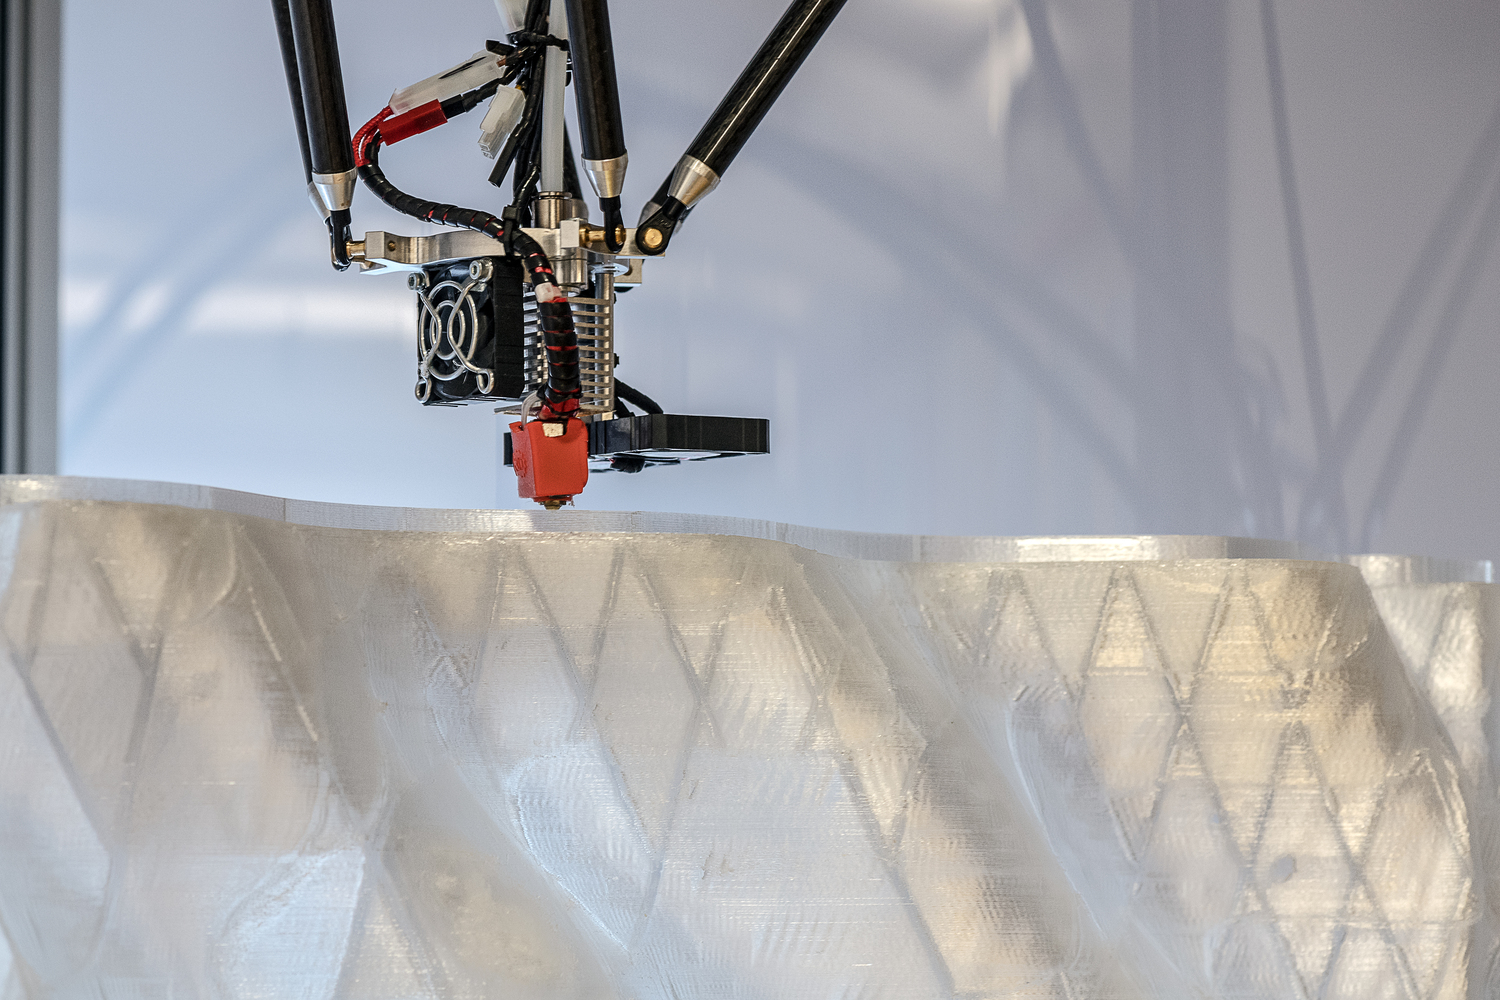 3D Printing a translucent building facades with integrated functions. Photo via Andreas Heddergott/TUM.